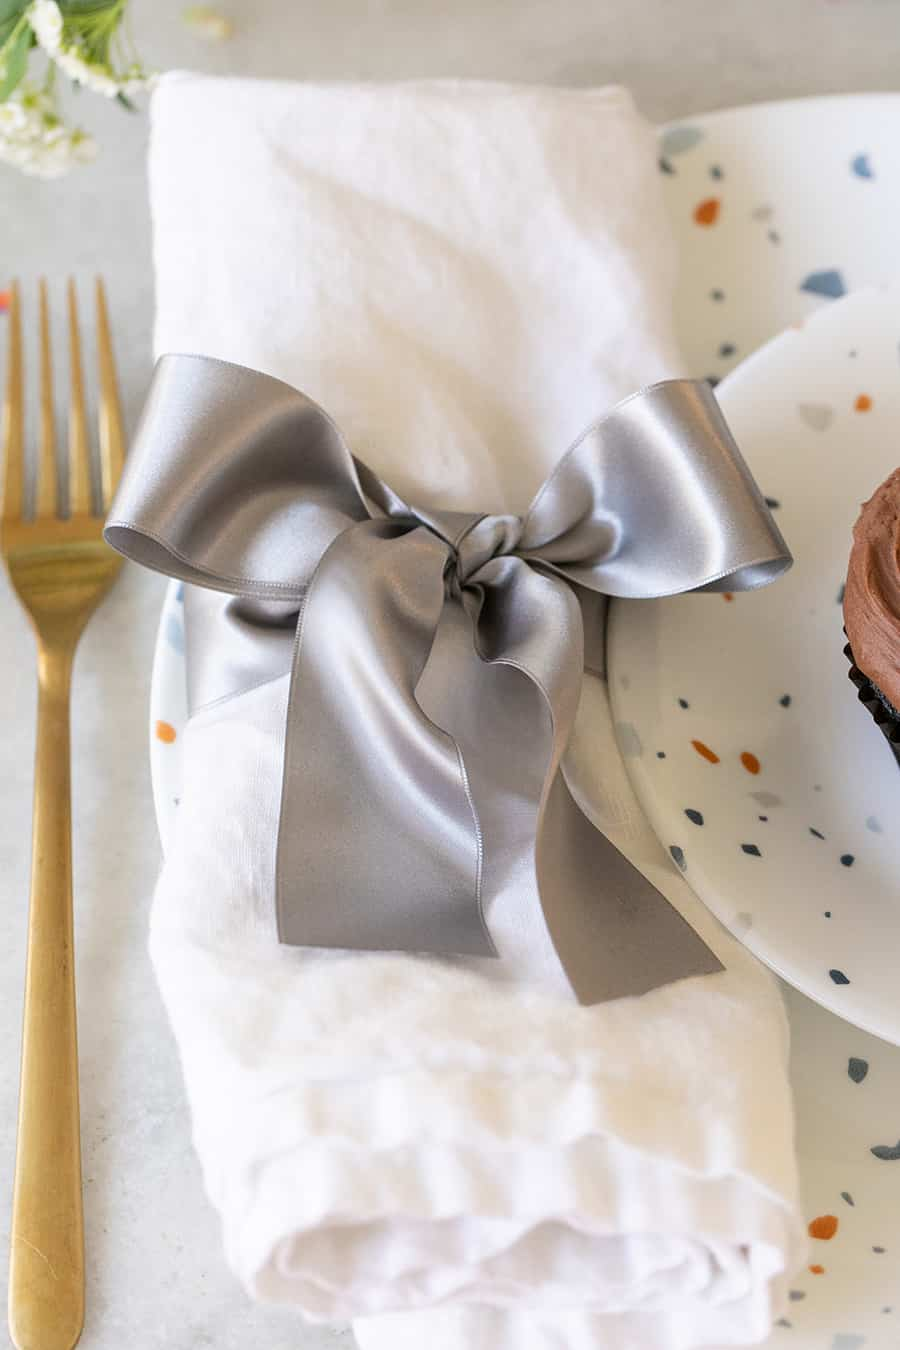 White napkin with a silver ribbon tied around it.